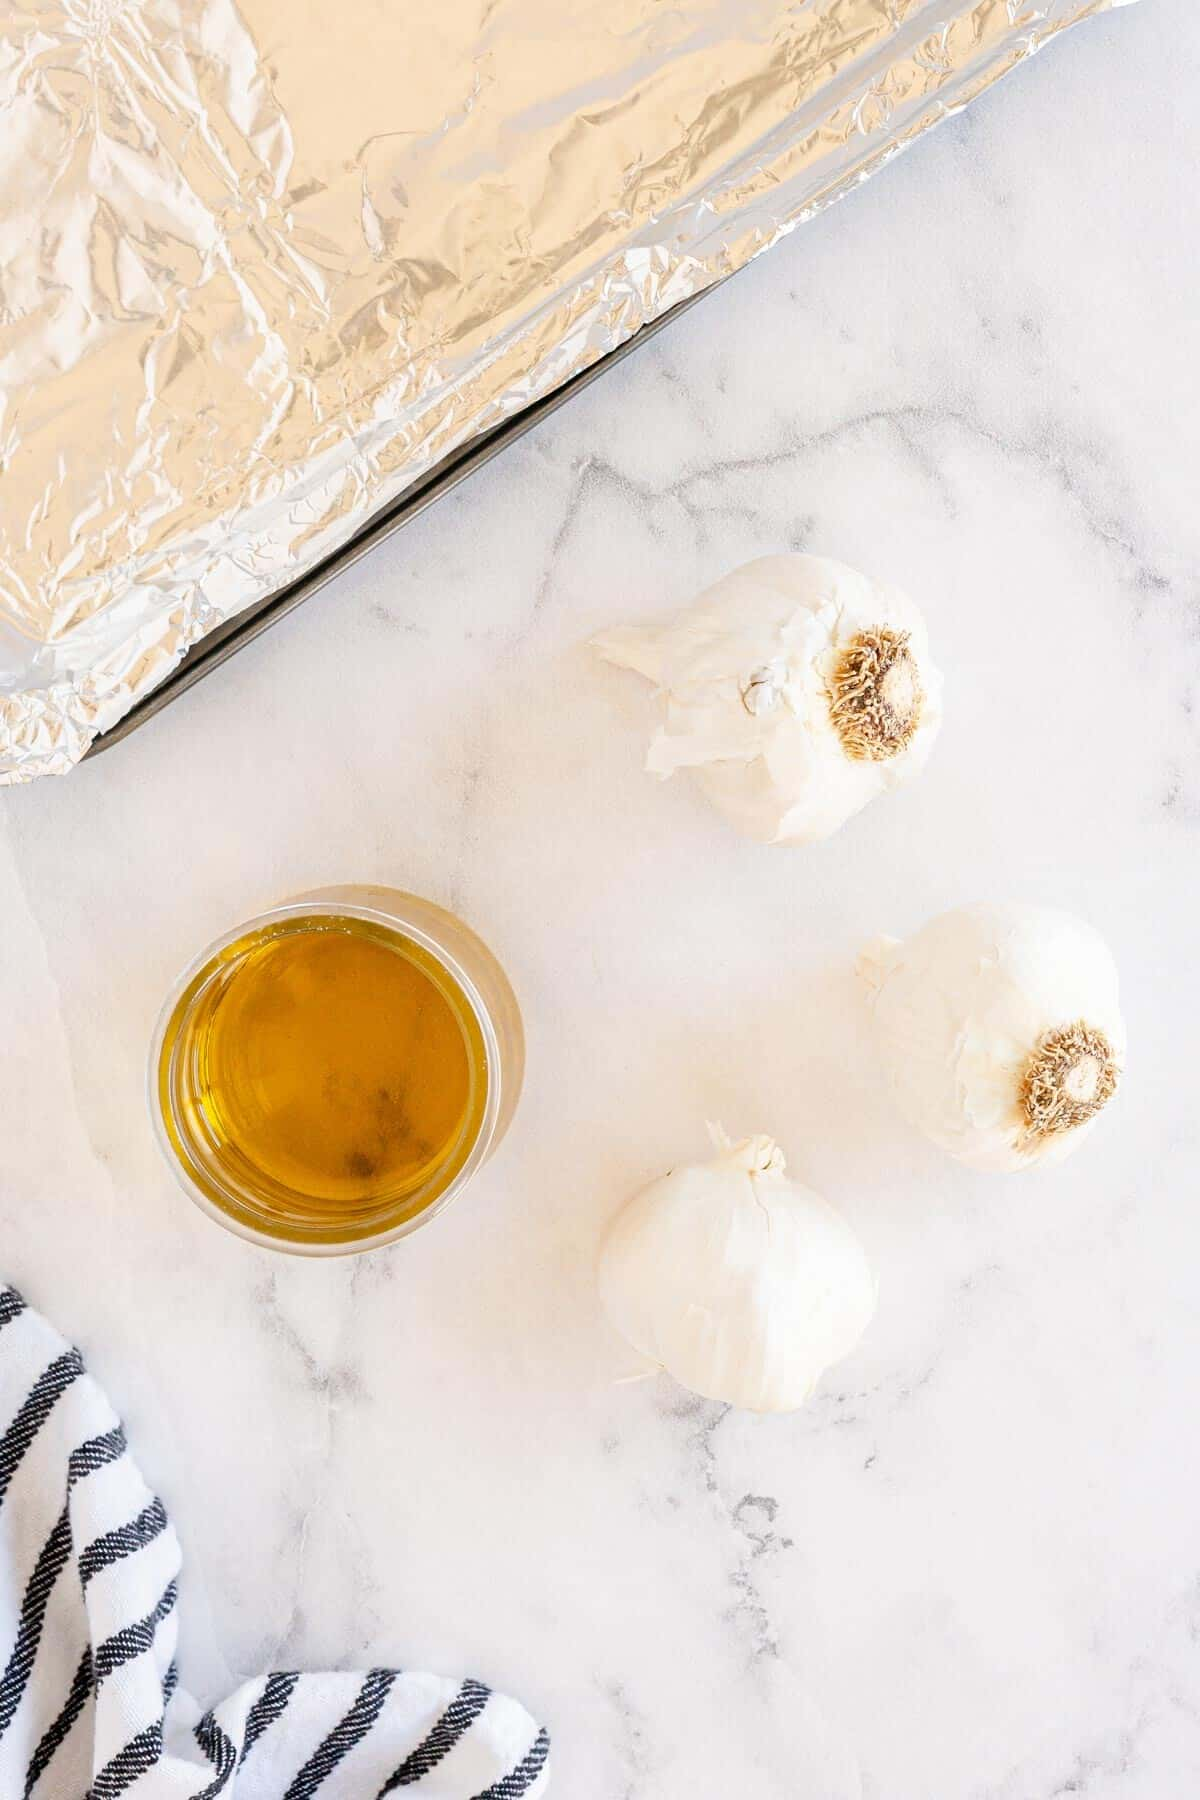 garlic and olive oil on a marble countertop